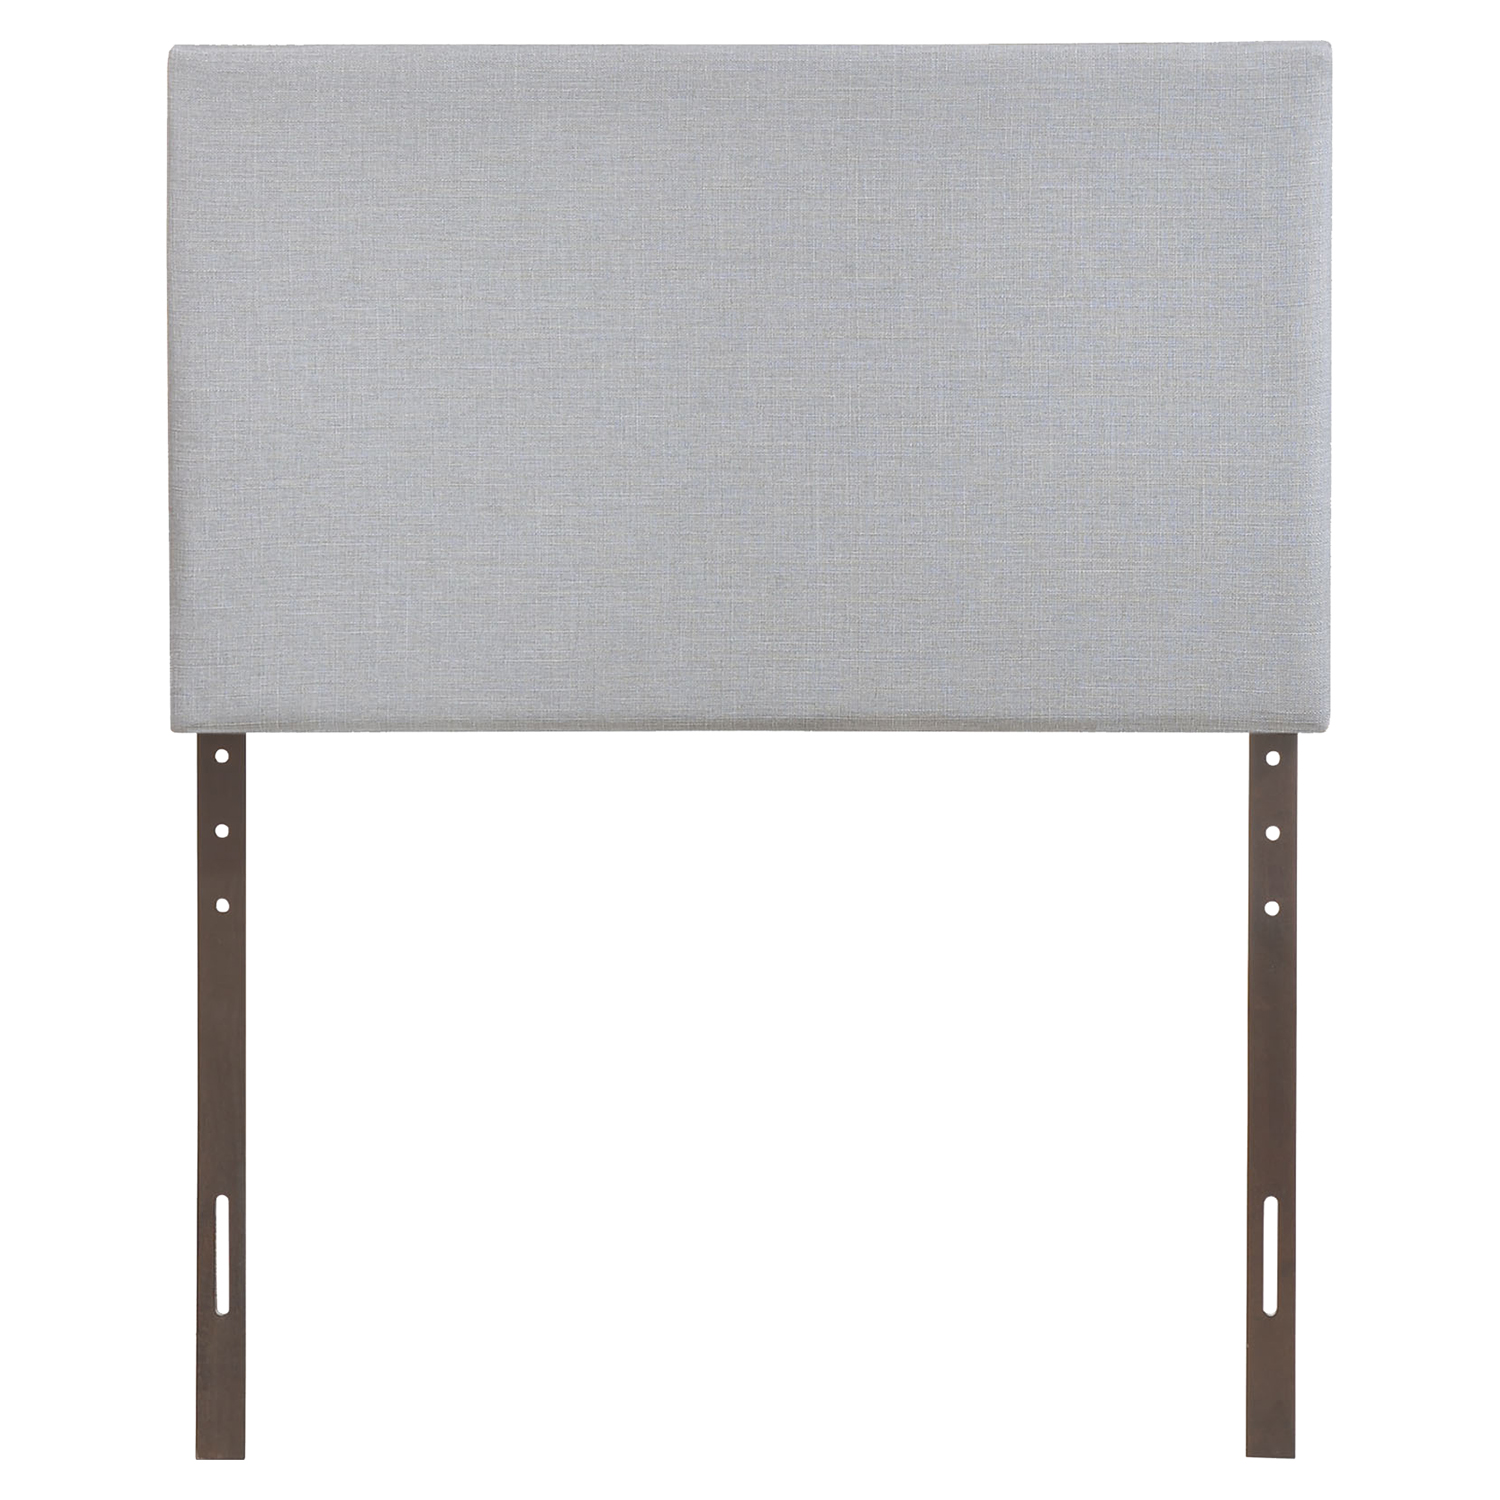 Region Twin Upholstered Headboard - Sky Gray - EEI-MOD-5214-GRY